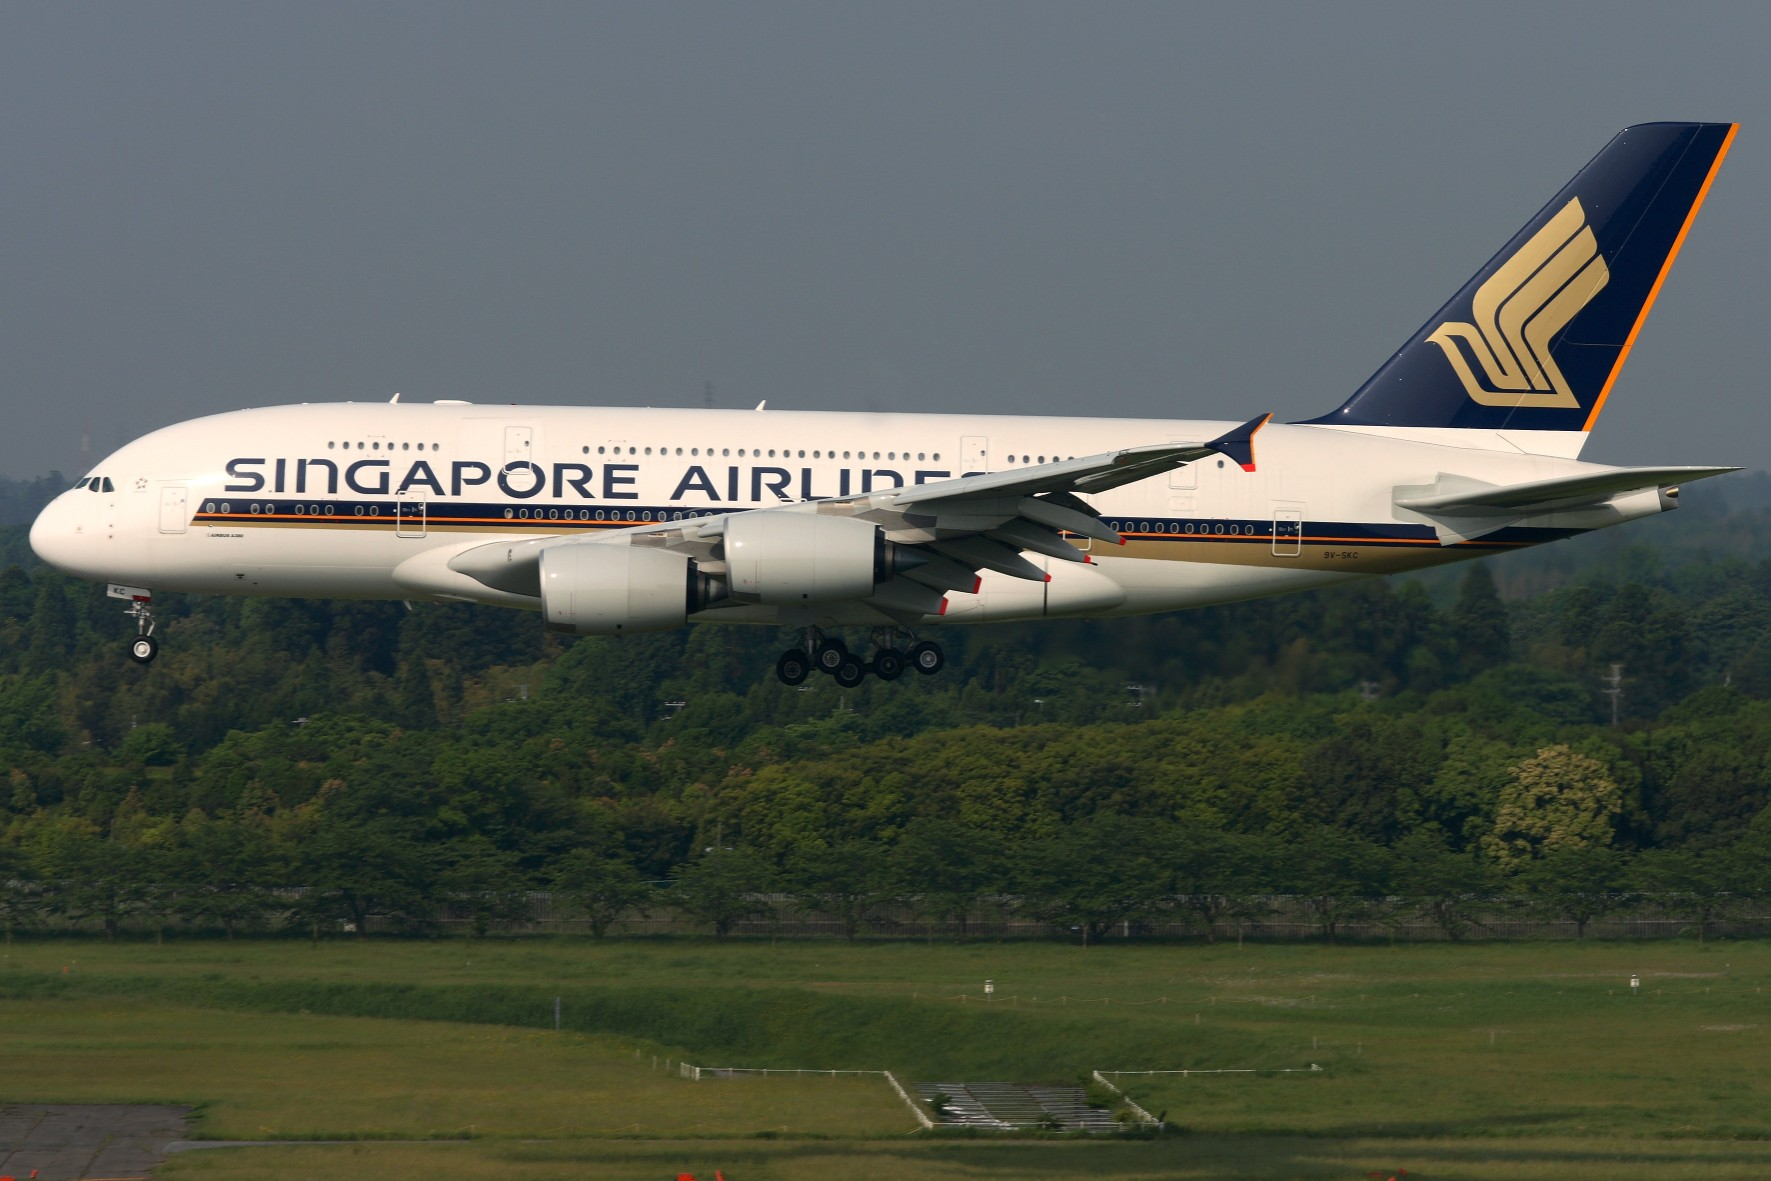 Exterior of Singapore Airlines A380-300 Aircraft